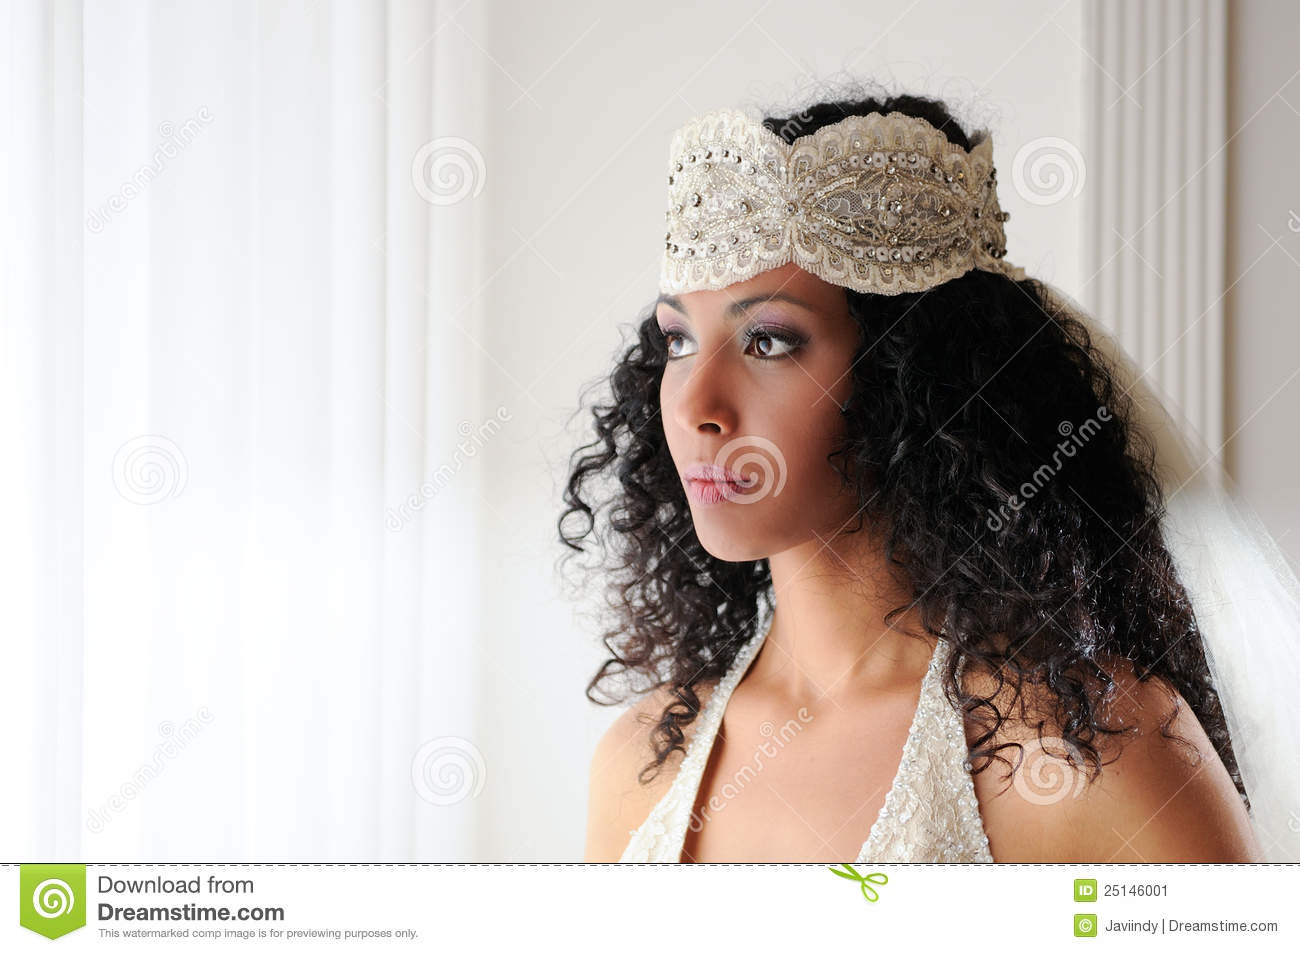 Young Black Woman With Wedding Dress Stock Image - Image of designer ...